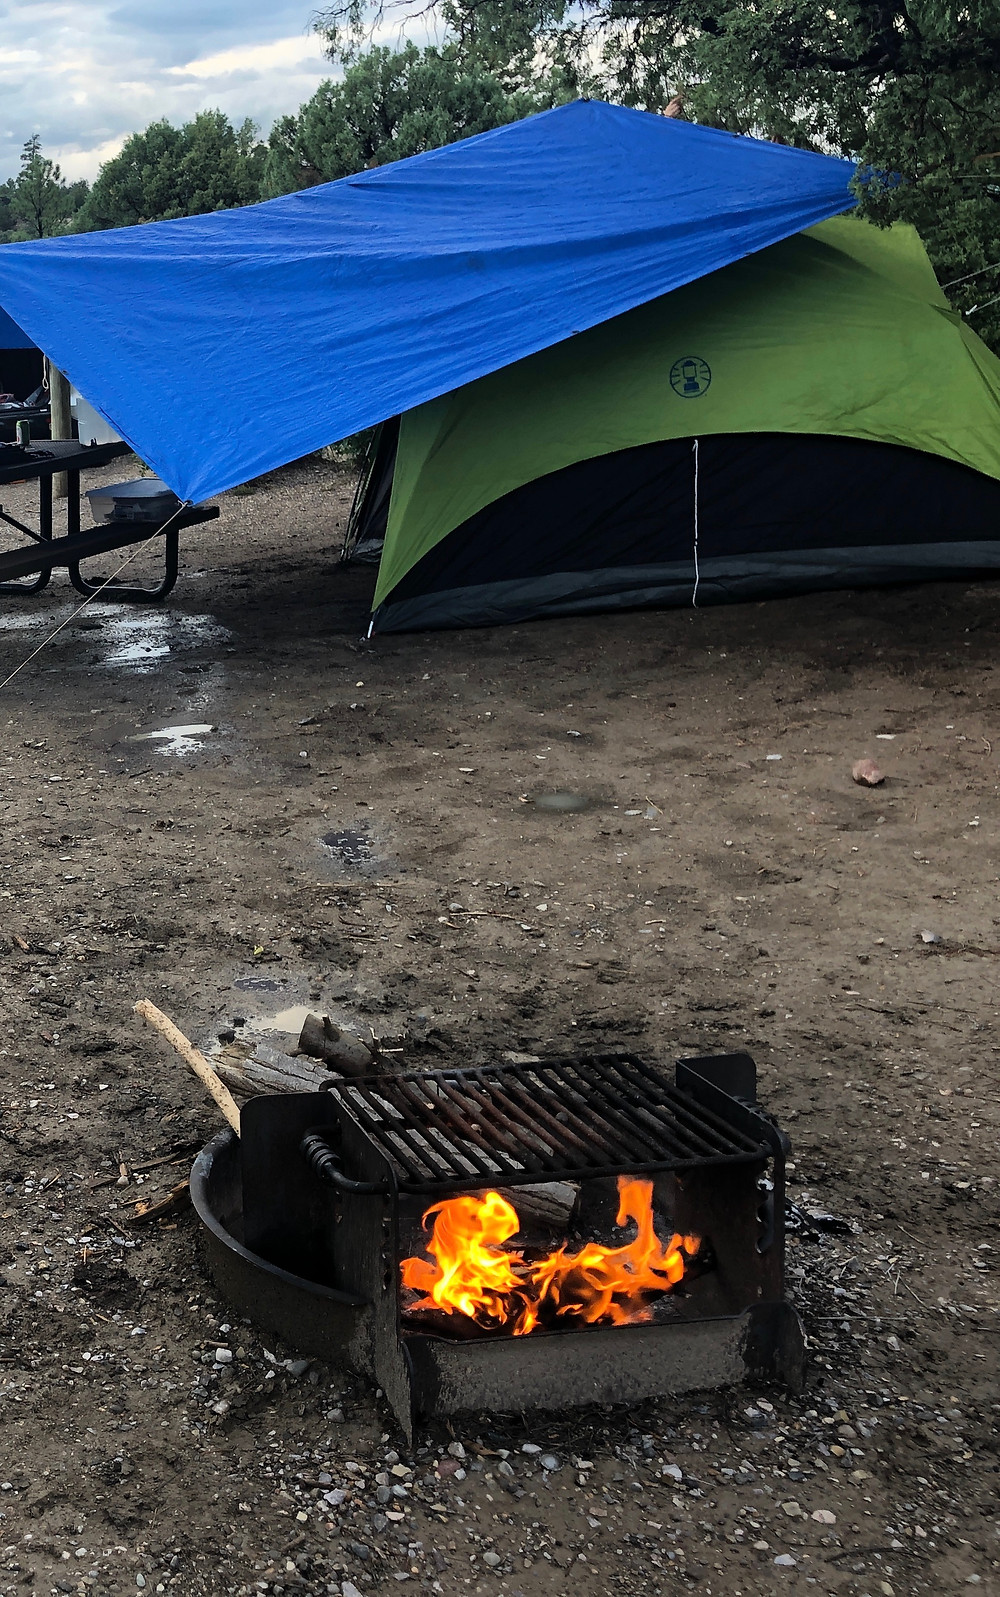 Tent and campfire at Willow Creek Campground